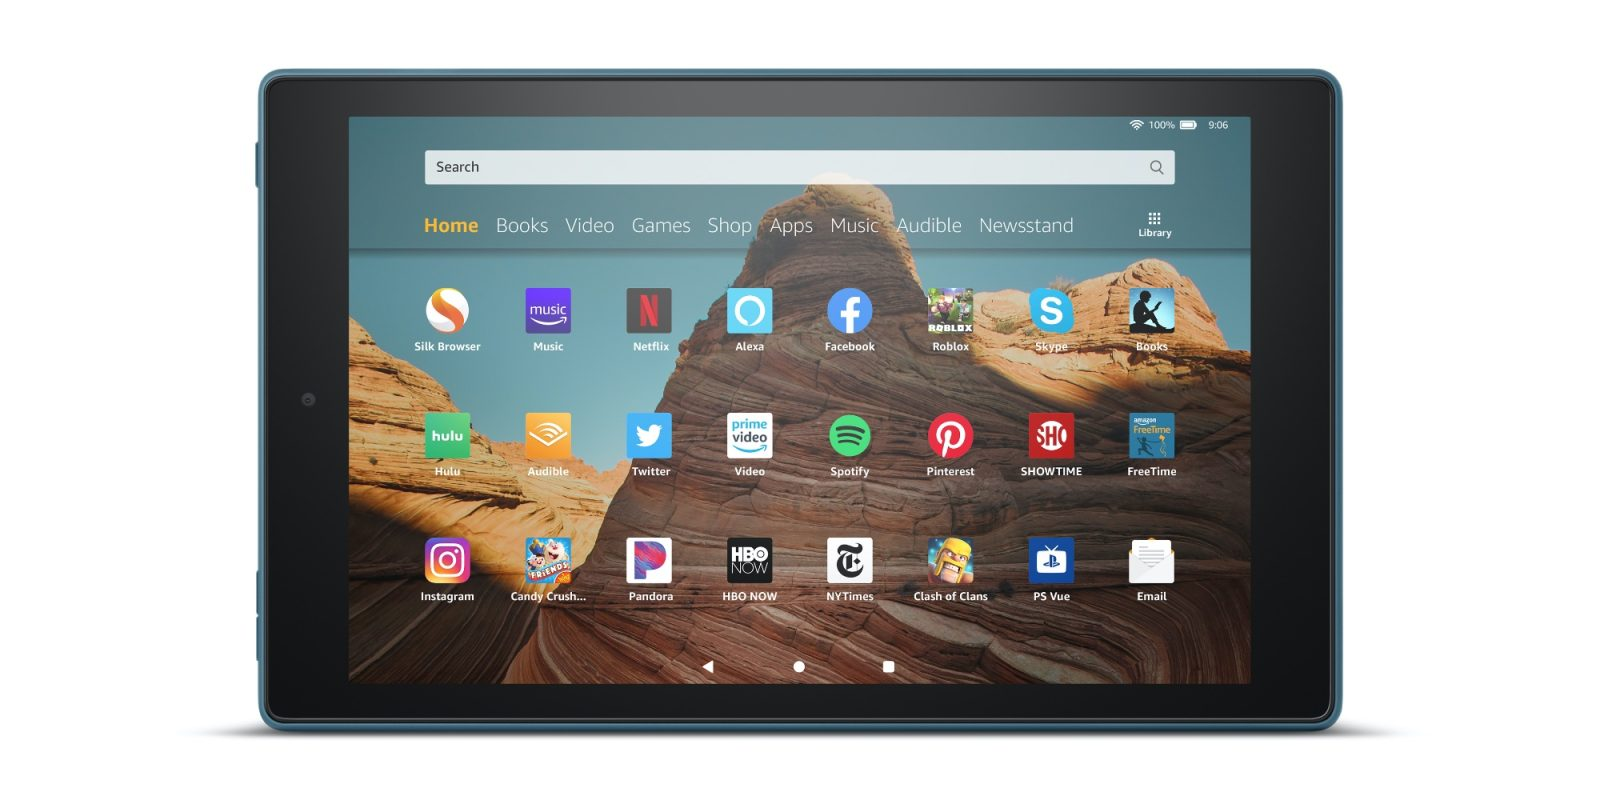 Amazon returns Fire tablet lineup to Black Friday prices starting at $35